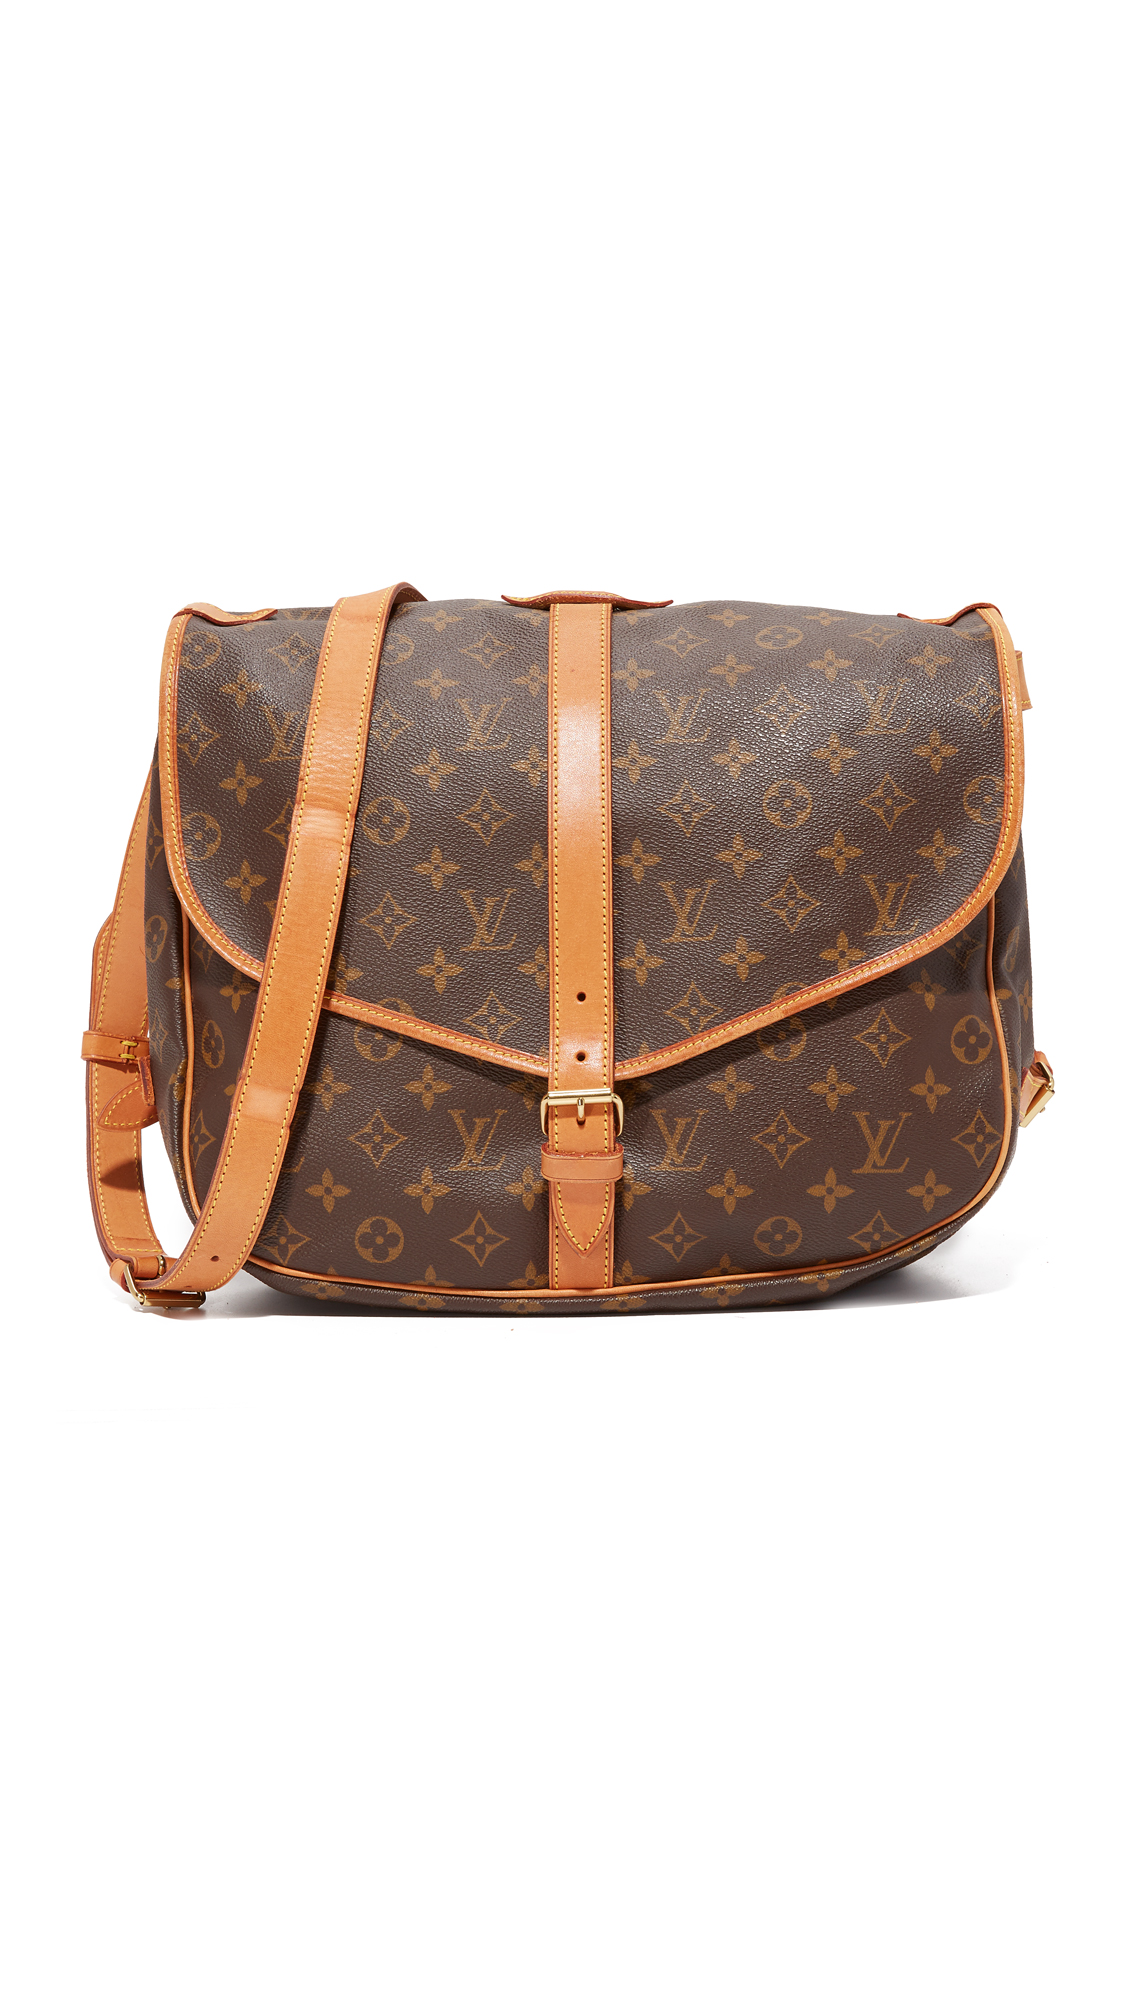 What Goes Around Comes Around Louis Vuitton Monogram Bag (Previously Owned) - Brown